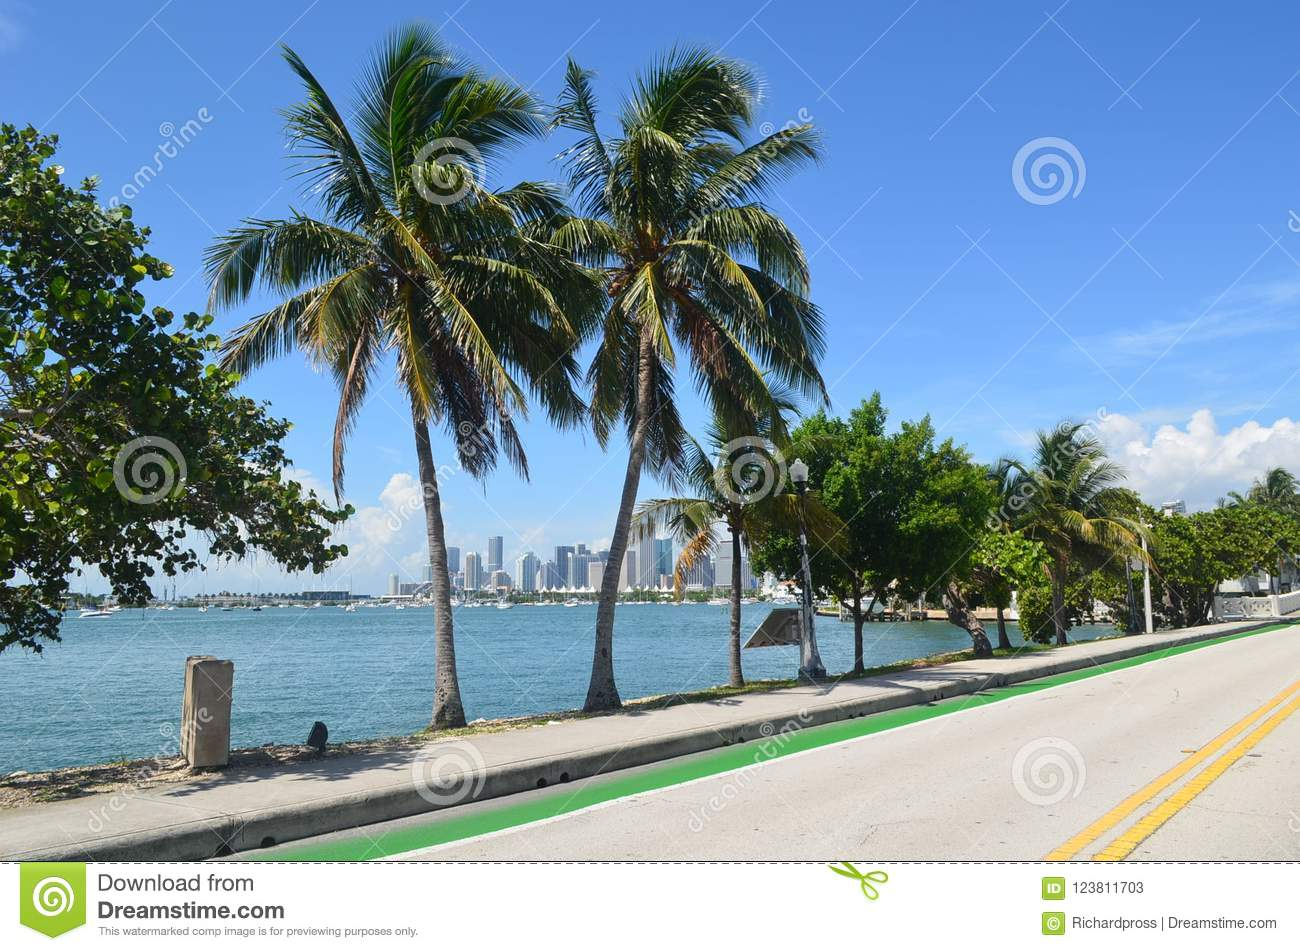 Royal Palm Trees Framing A Distant Miami Skyline Stock Image - Image ...